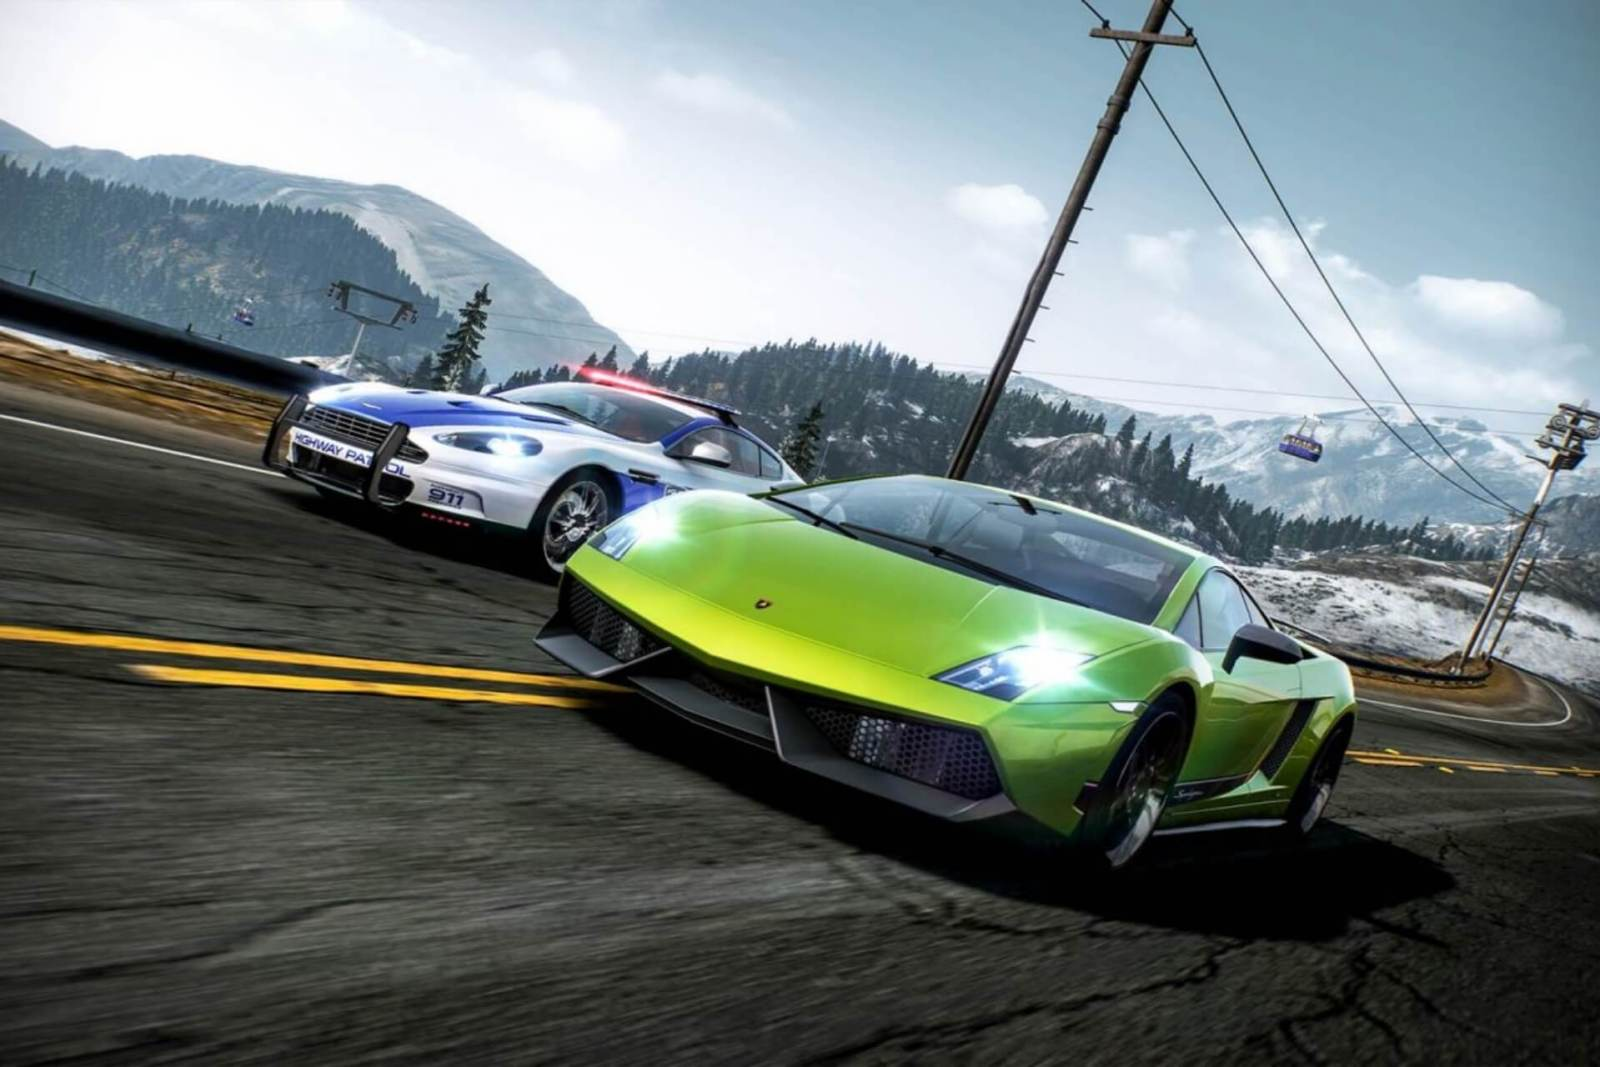 NEED FOR SPEED Hot Pursuit Remastered coming to Xbox One, PlayStation 4, and PC on November 6, Available to Pre-Order